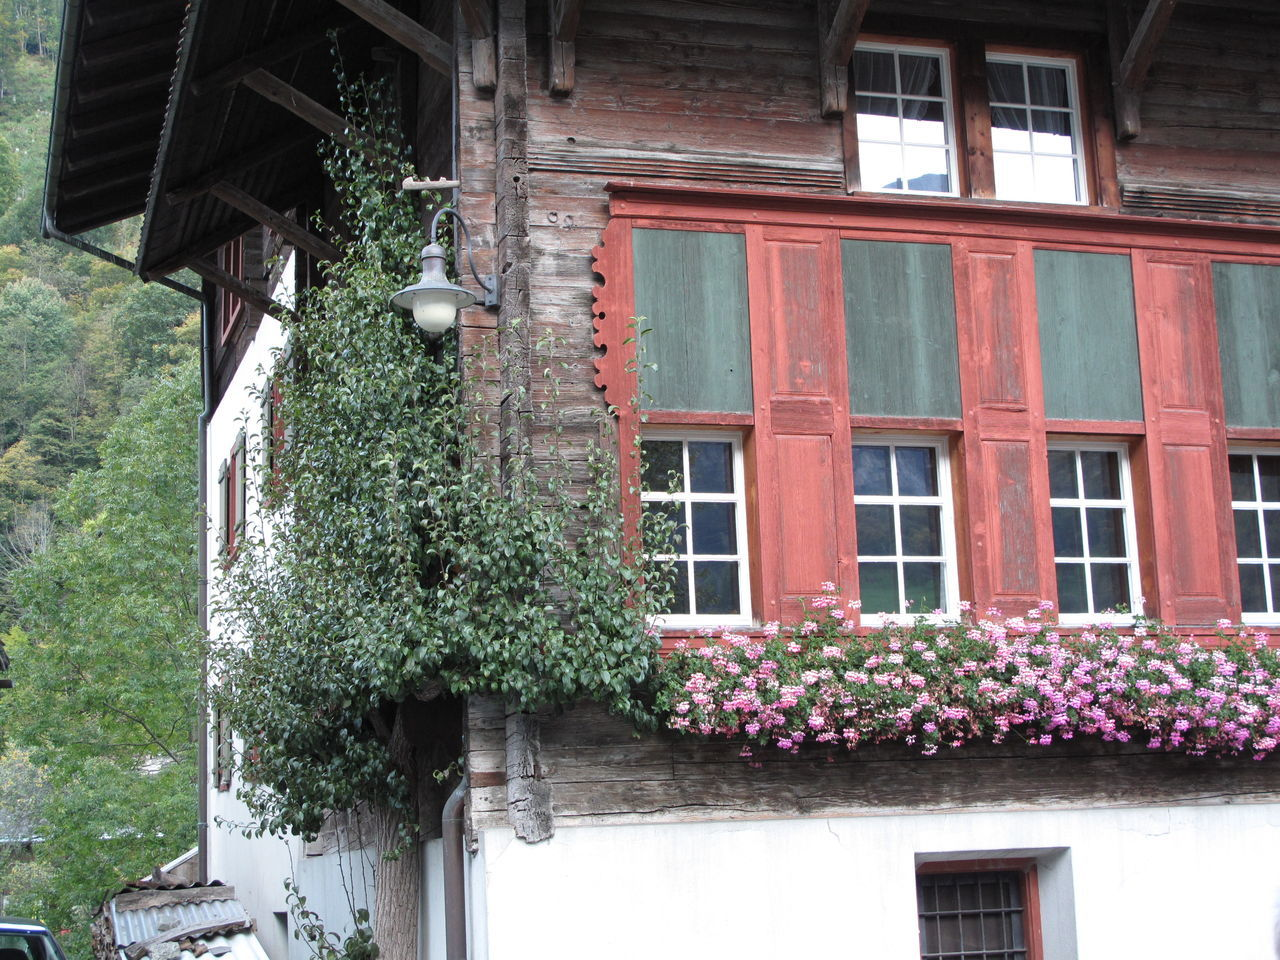 building exterior, architecture, built structure, growth, flower, plant, window, house, outdoors, no people, nature, day, window box, low angle view, ivy, beauty in nature, fragility